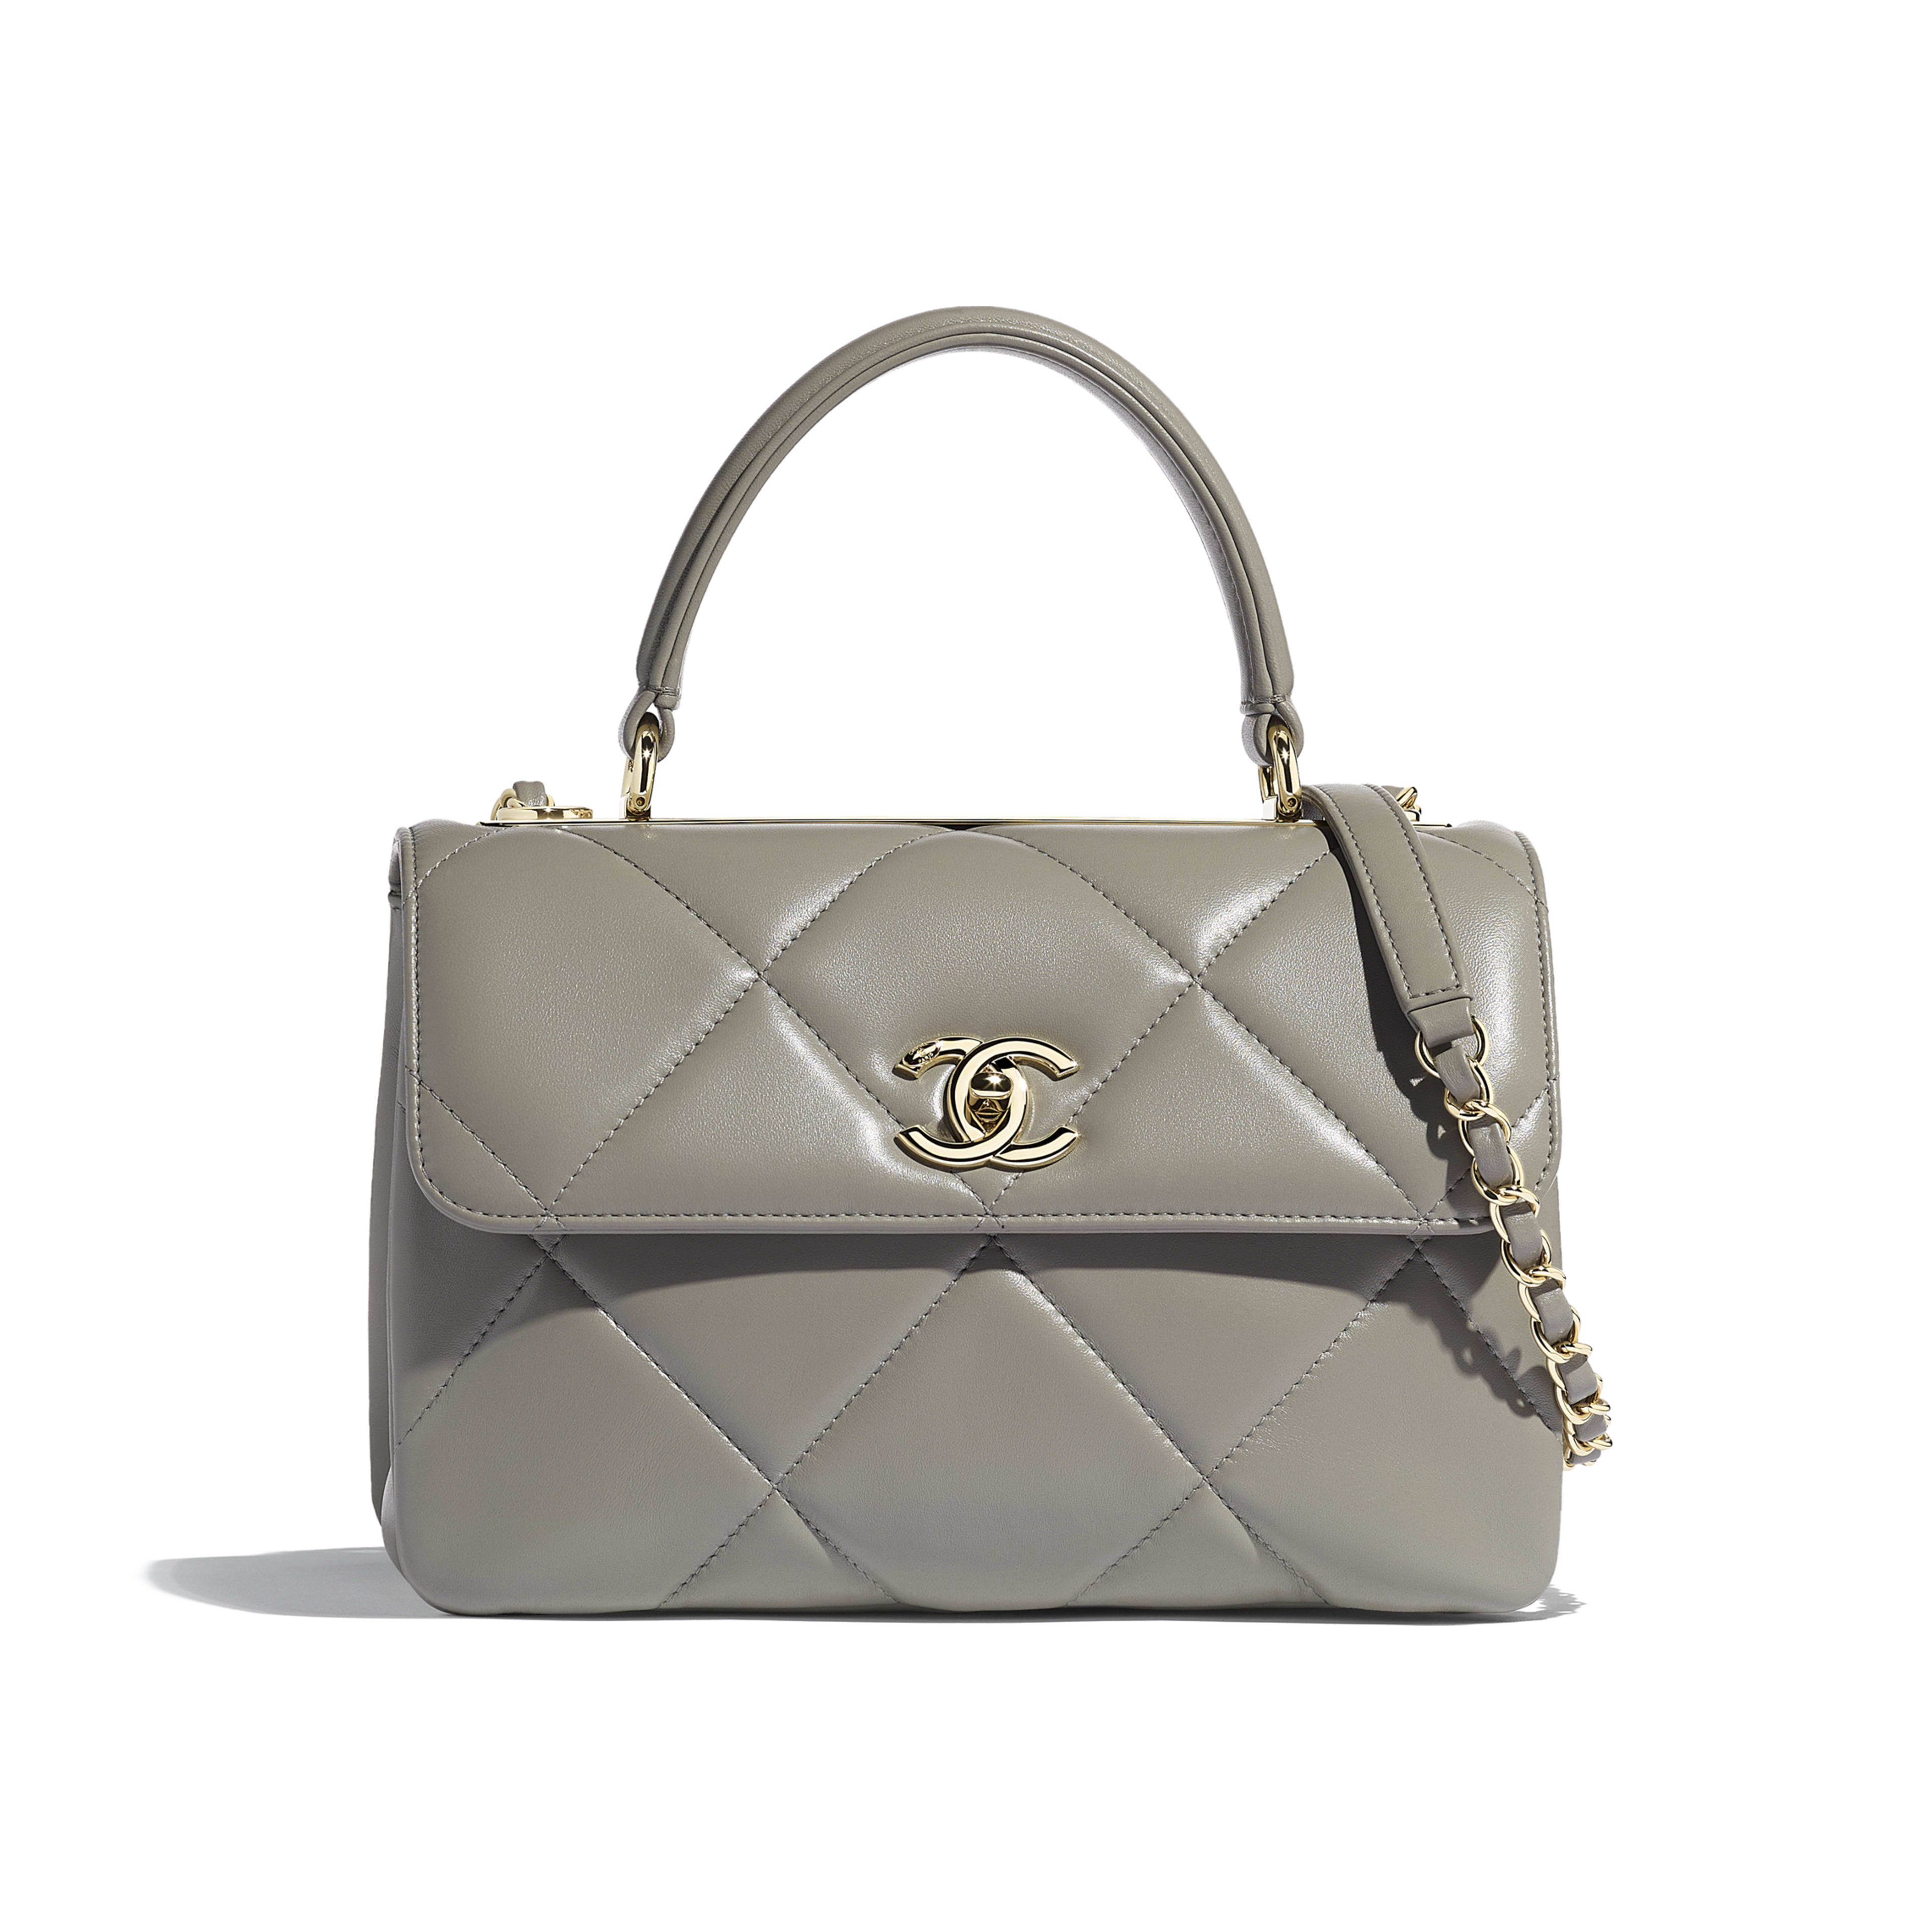 Small Flap Bag with Top Handle - Gray - Lambskin & Gold-Tone Metal - Default view - see full sized version